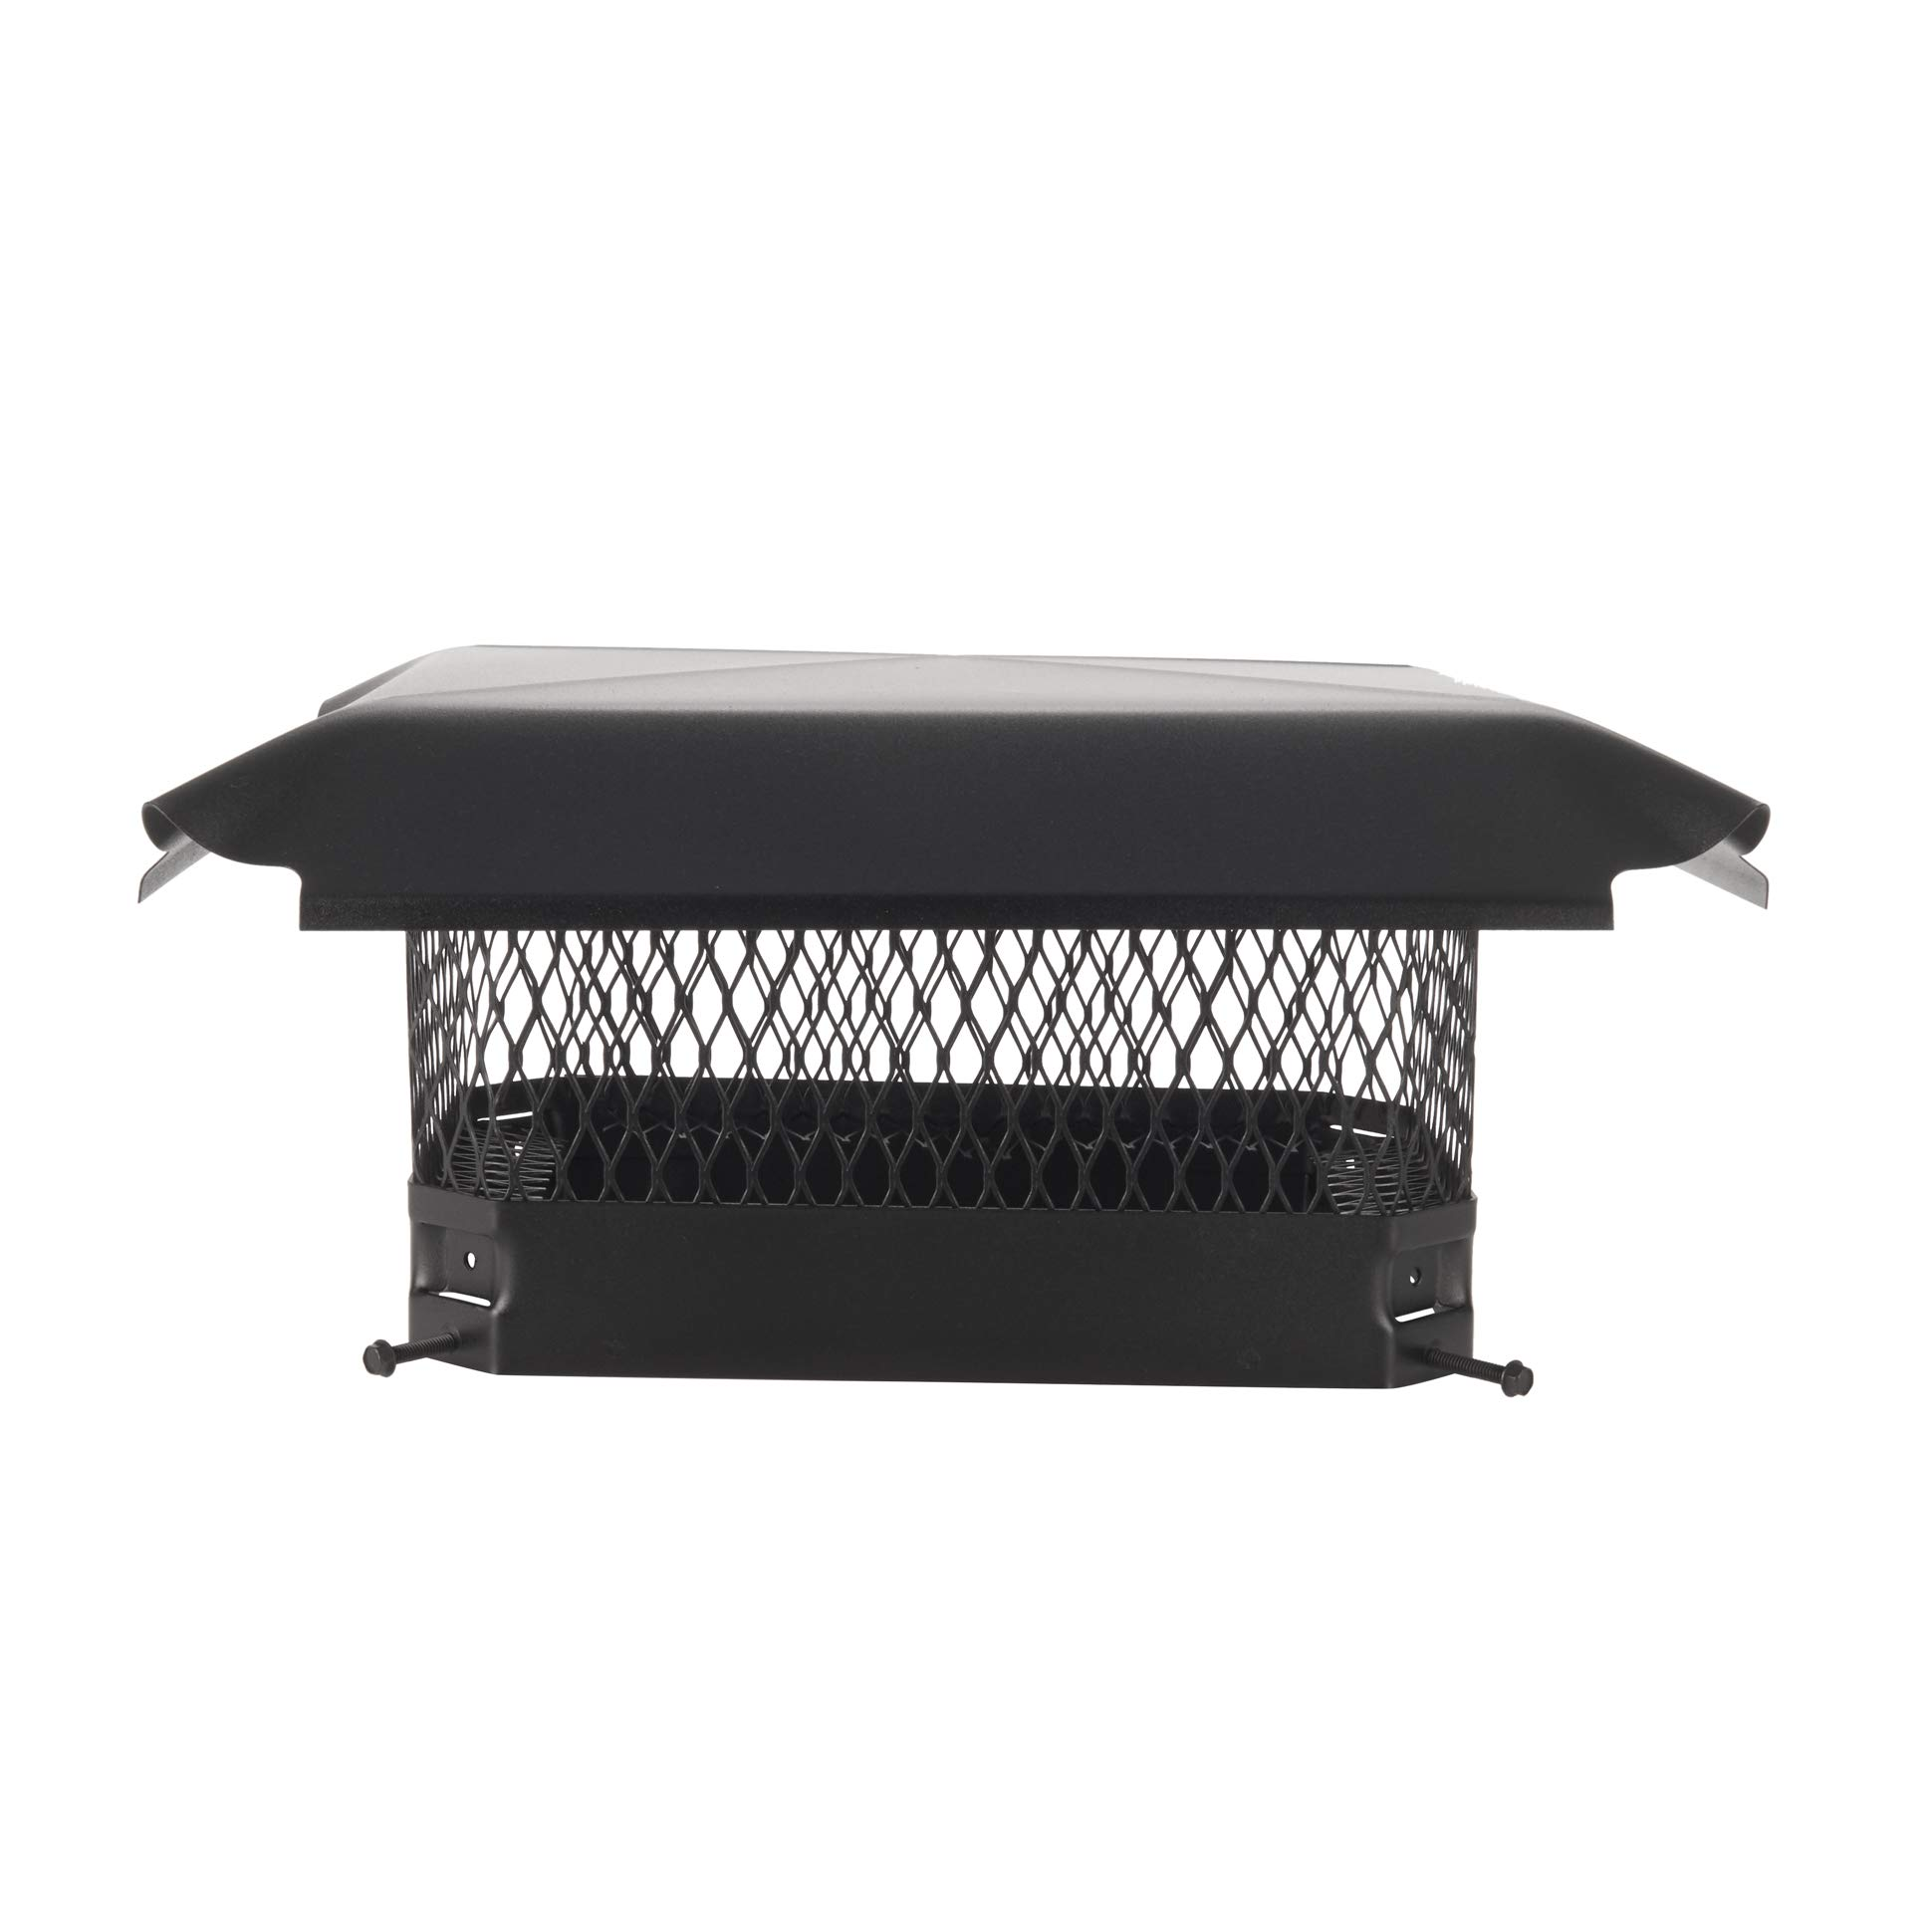 Draft King CBC913 Black Bolt On Galvanized Steel Single Flue Chimney Cap for Use in California and Oregon